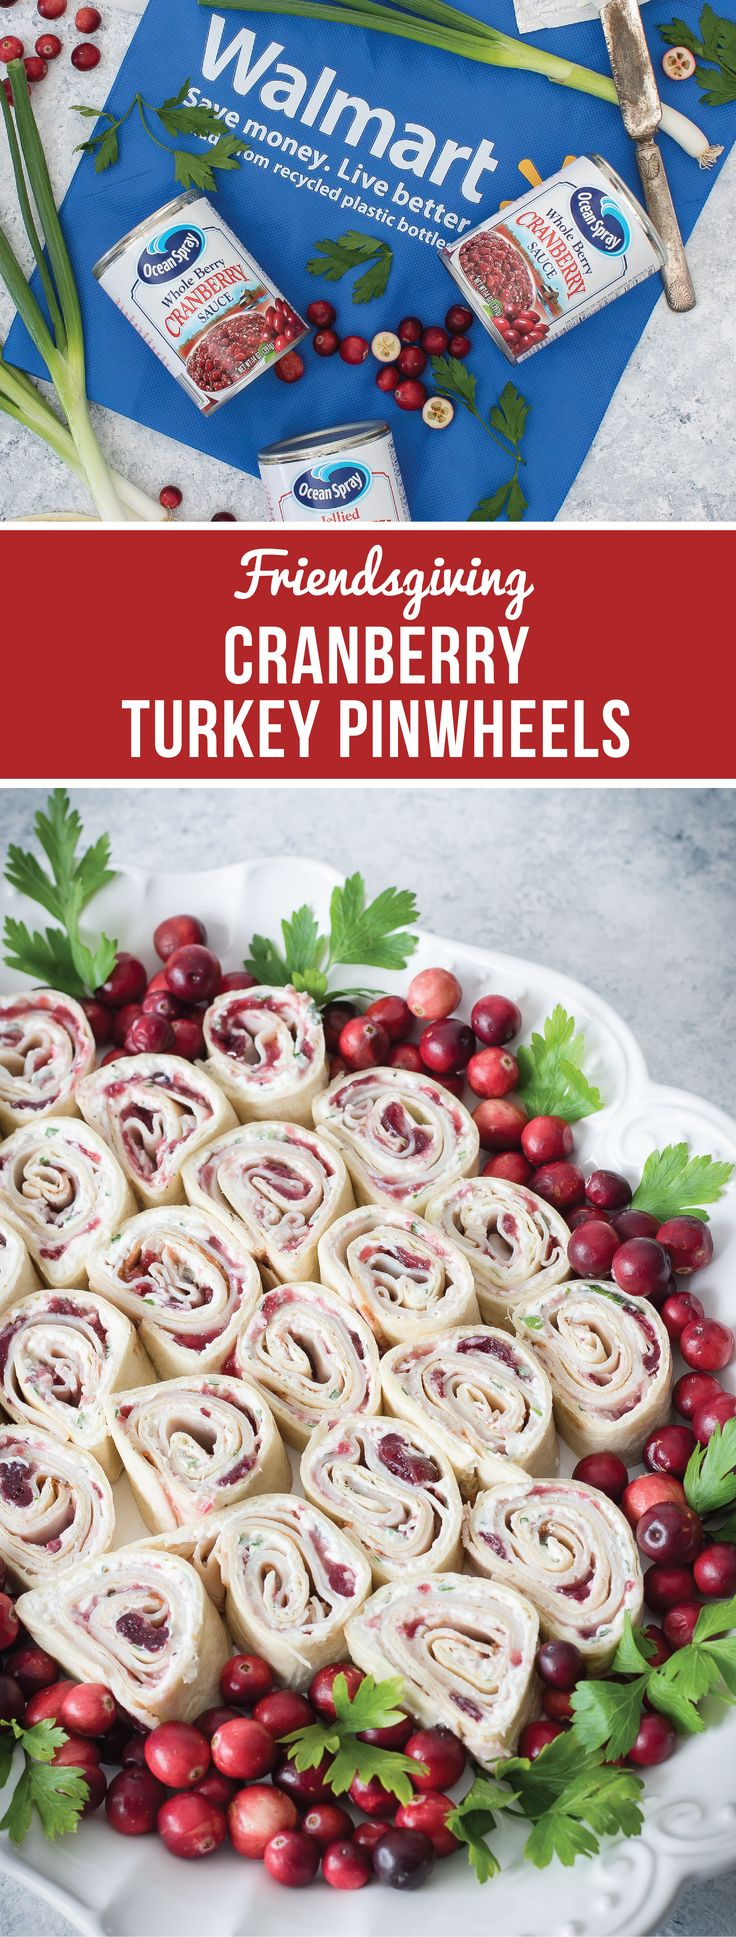 For swirls of holiday flavor perfection, check out this recipe for Cranberry Turkey Pinwheels. Ocean Spray® Whole Berry Cranberry Sauce, fresh sliced cajun turkey breast, cream cheese, and scallions combine to create the perfect holiday appetizer for your Friendsgiving celebration. To get ready for your foodie fall celebration, pick up all the ingredients and entertaining essentials you need at Walmart!